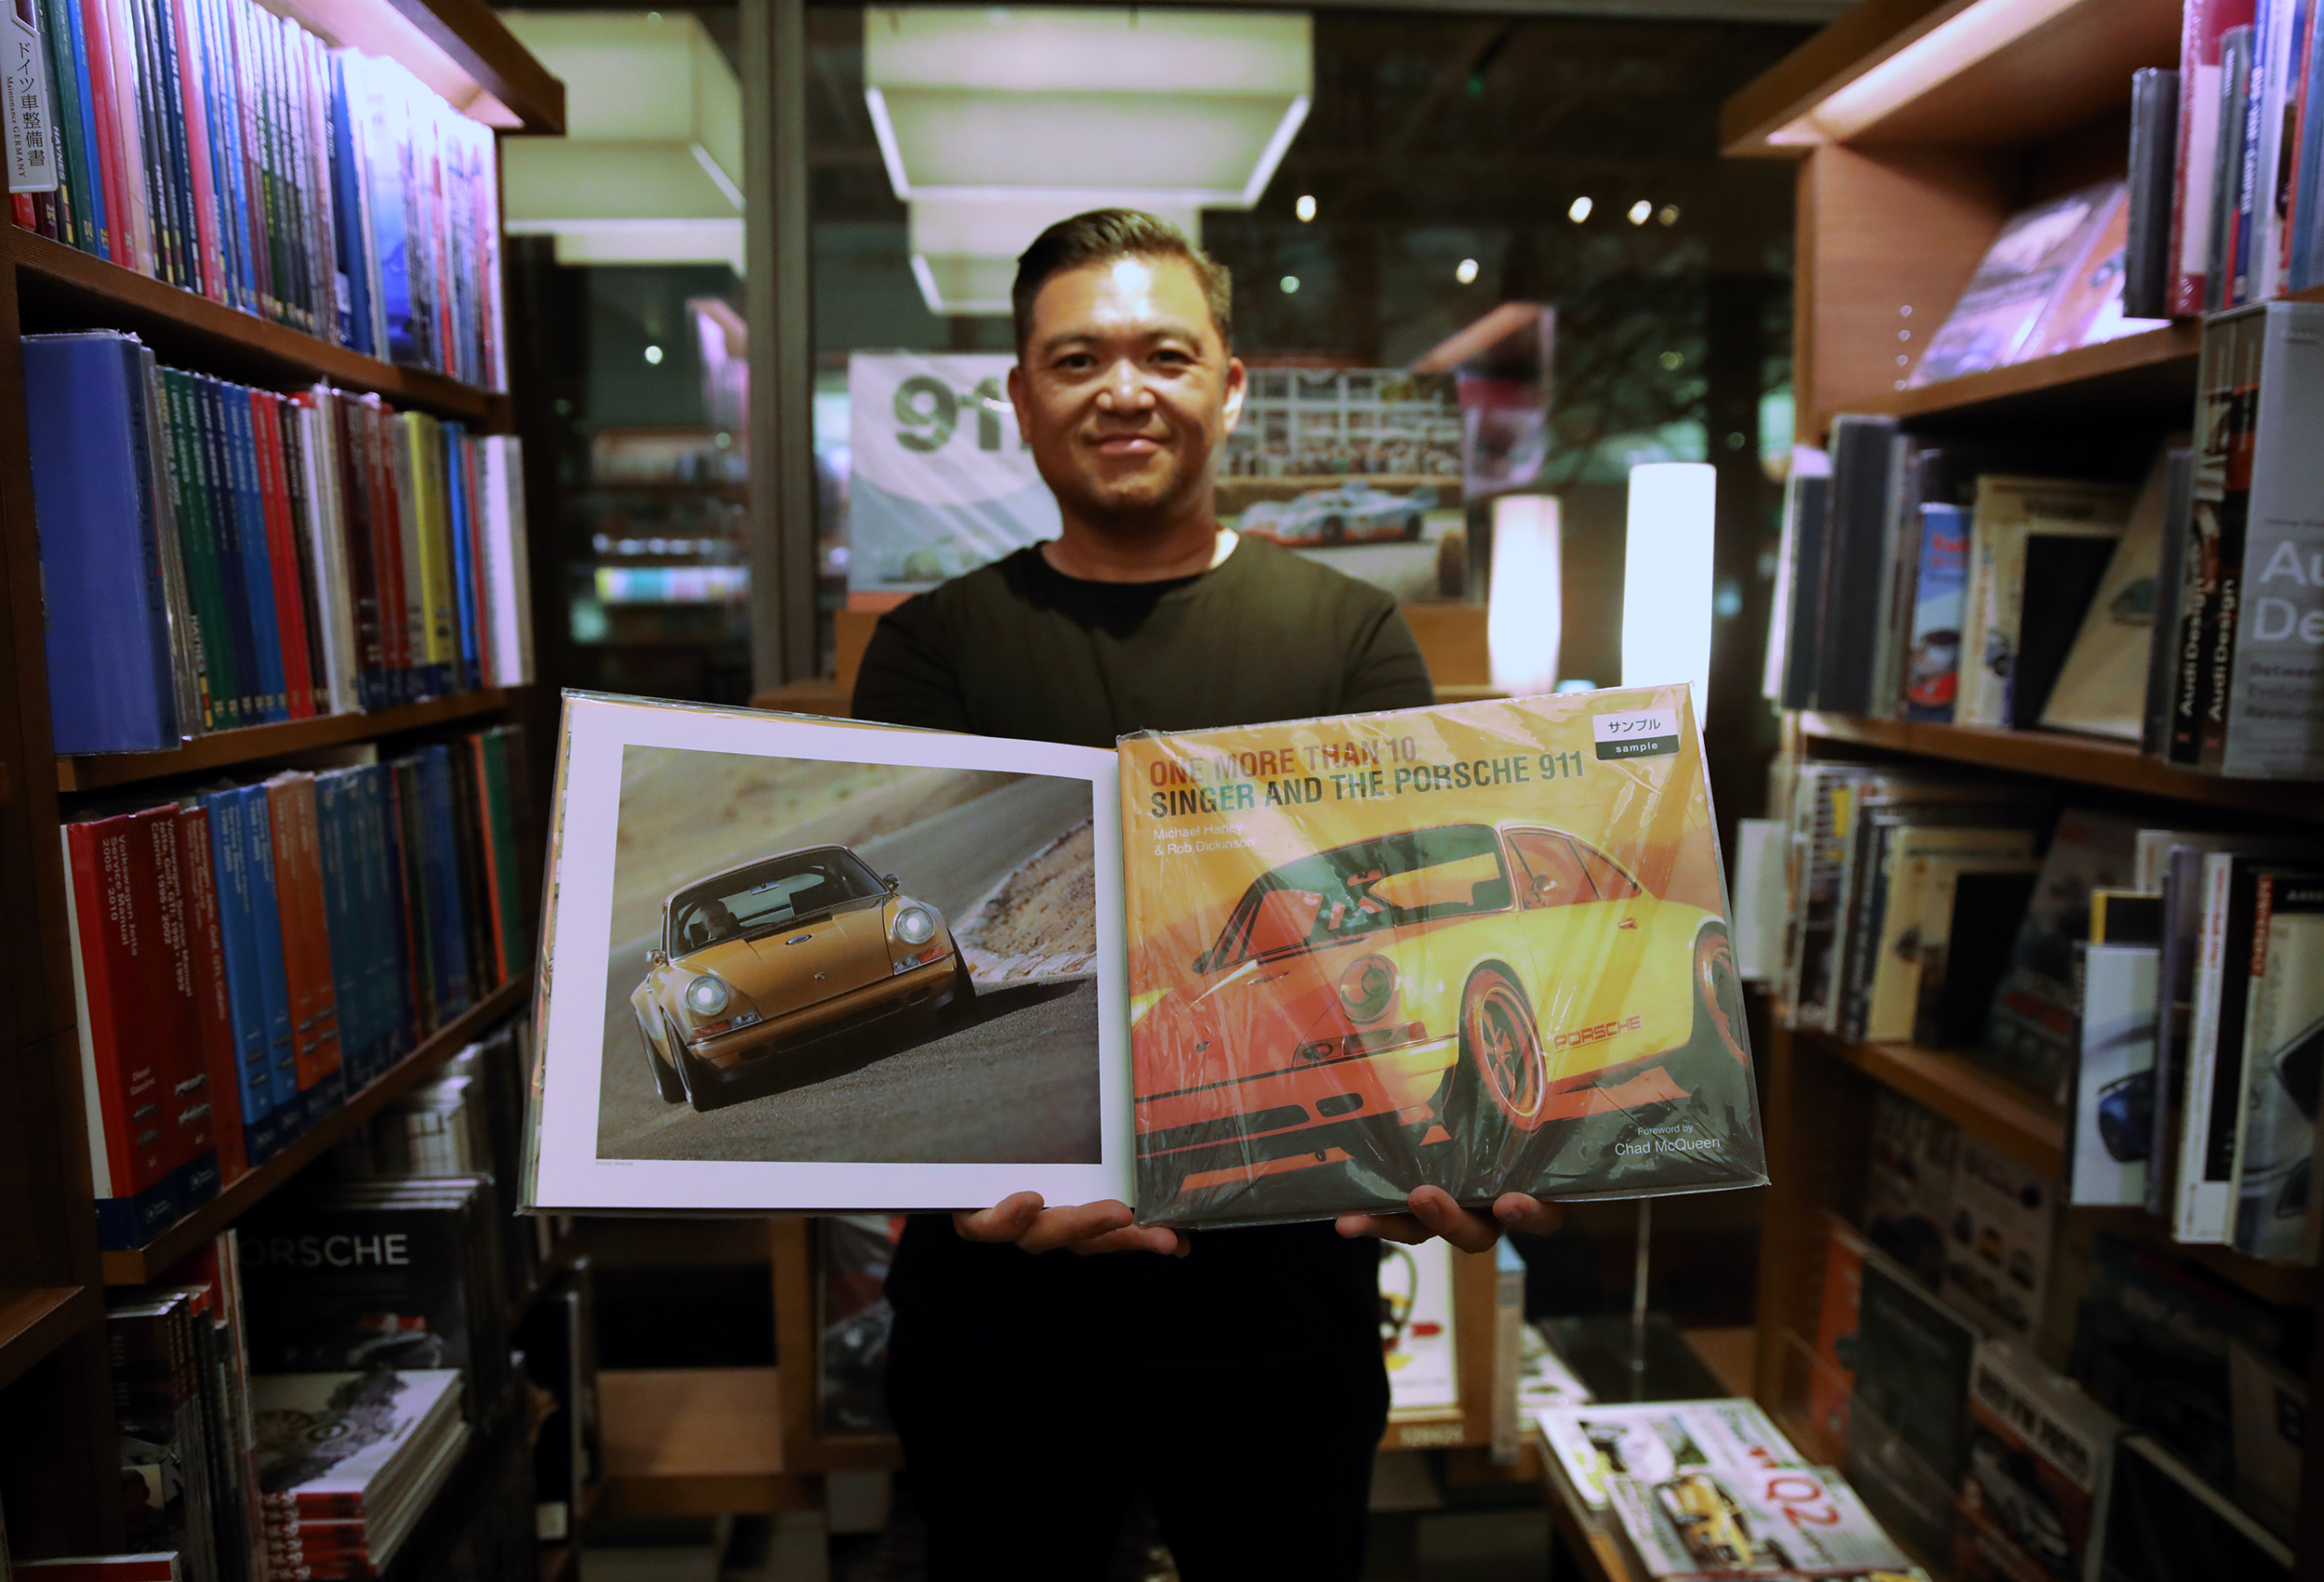 """Me at Daikanyama Tsutaya in Tokyo Japan with the hardcover book I worked on, """"One More Than 10"""" about Singer Vehicle Design and the Porsche 911."""